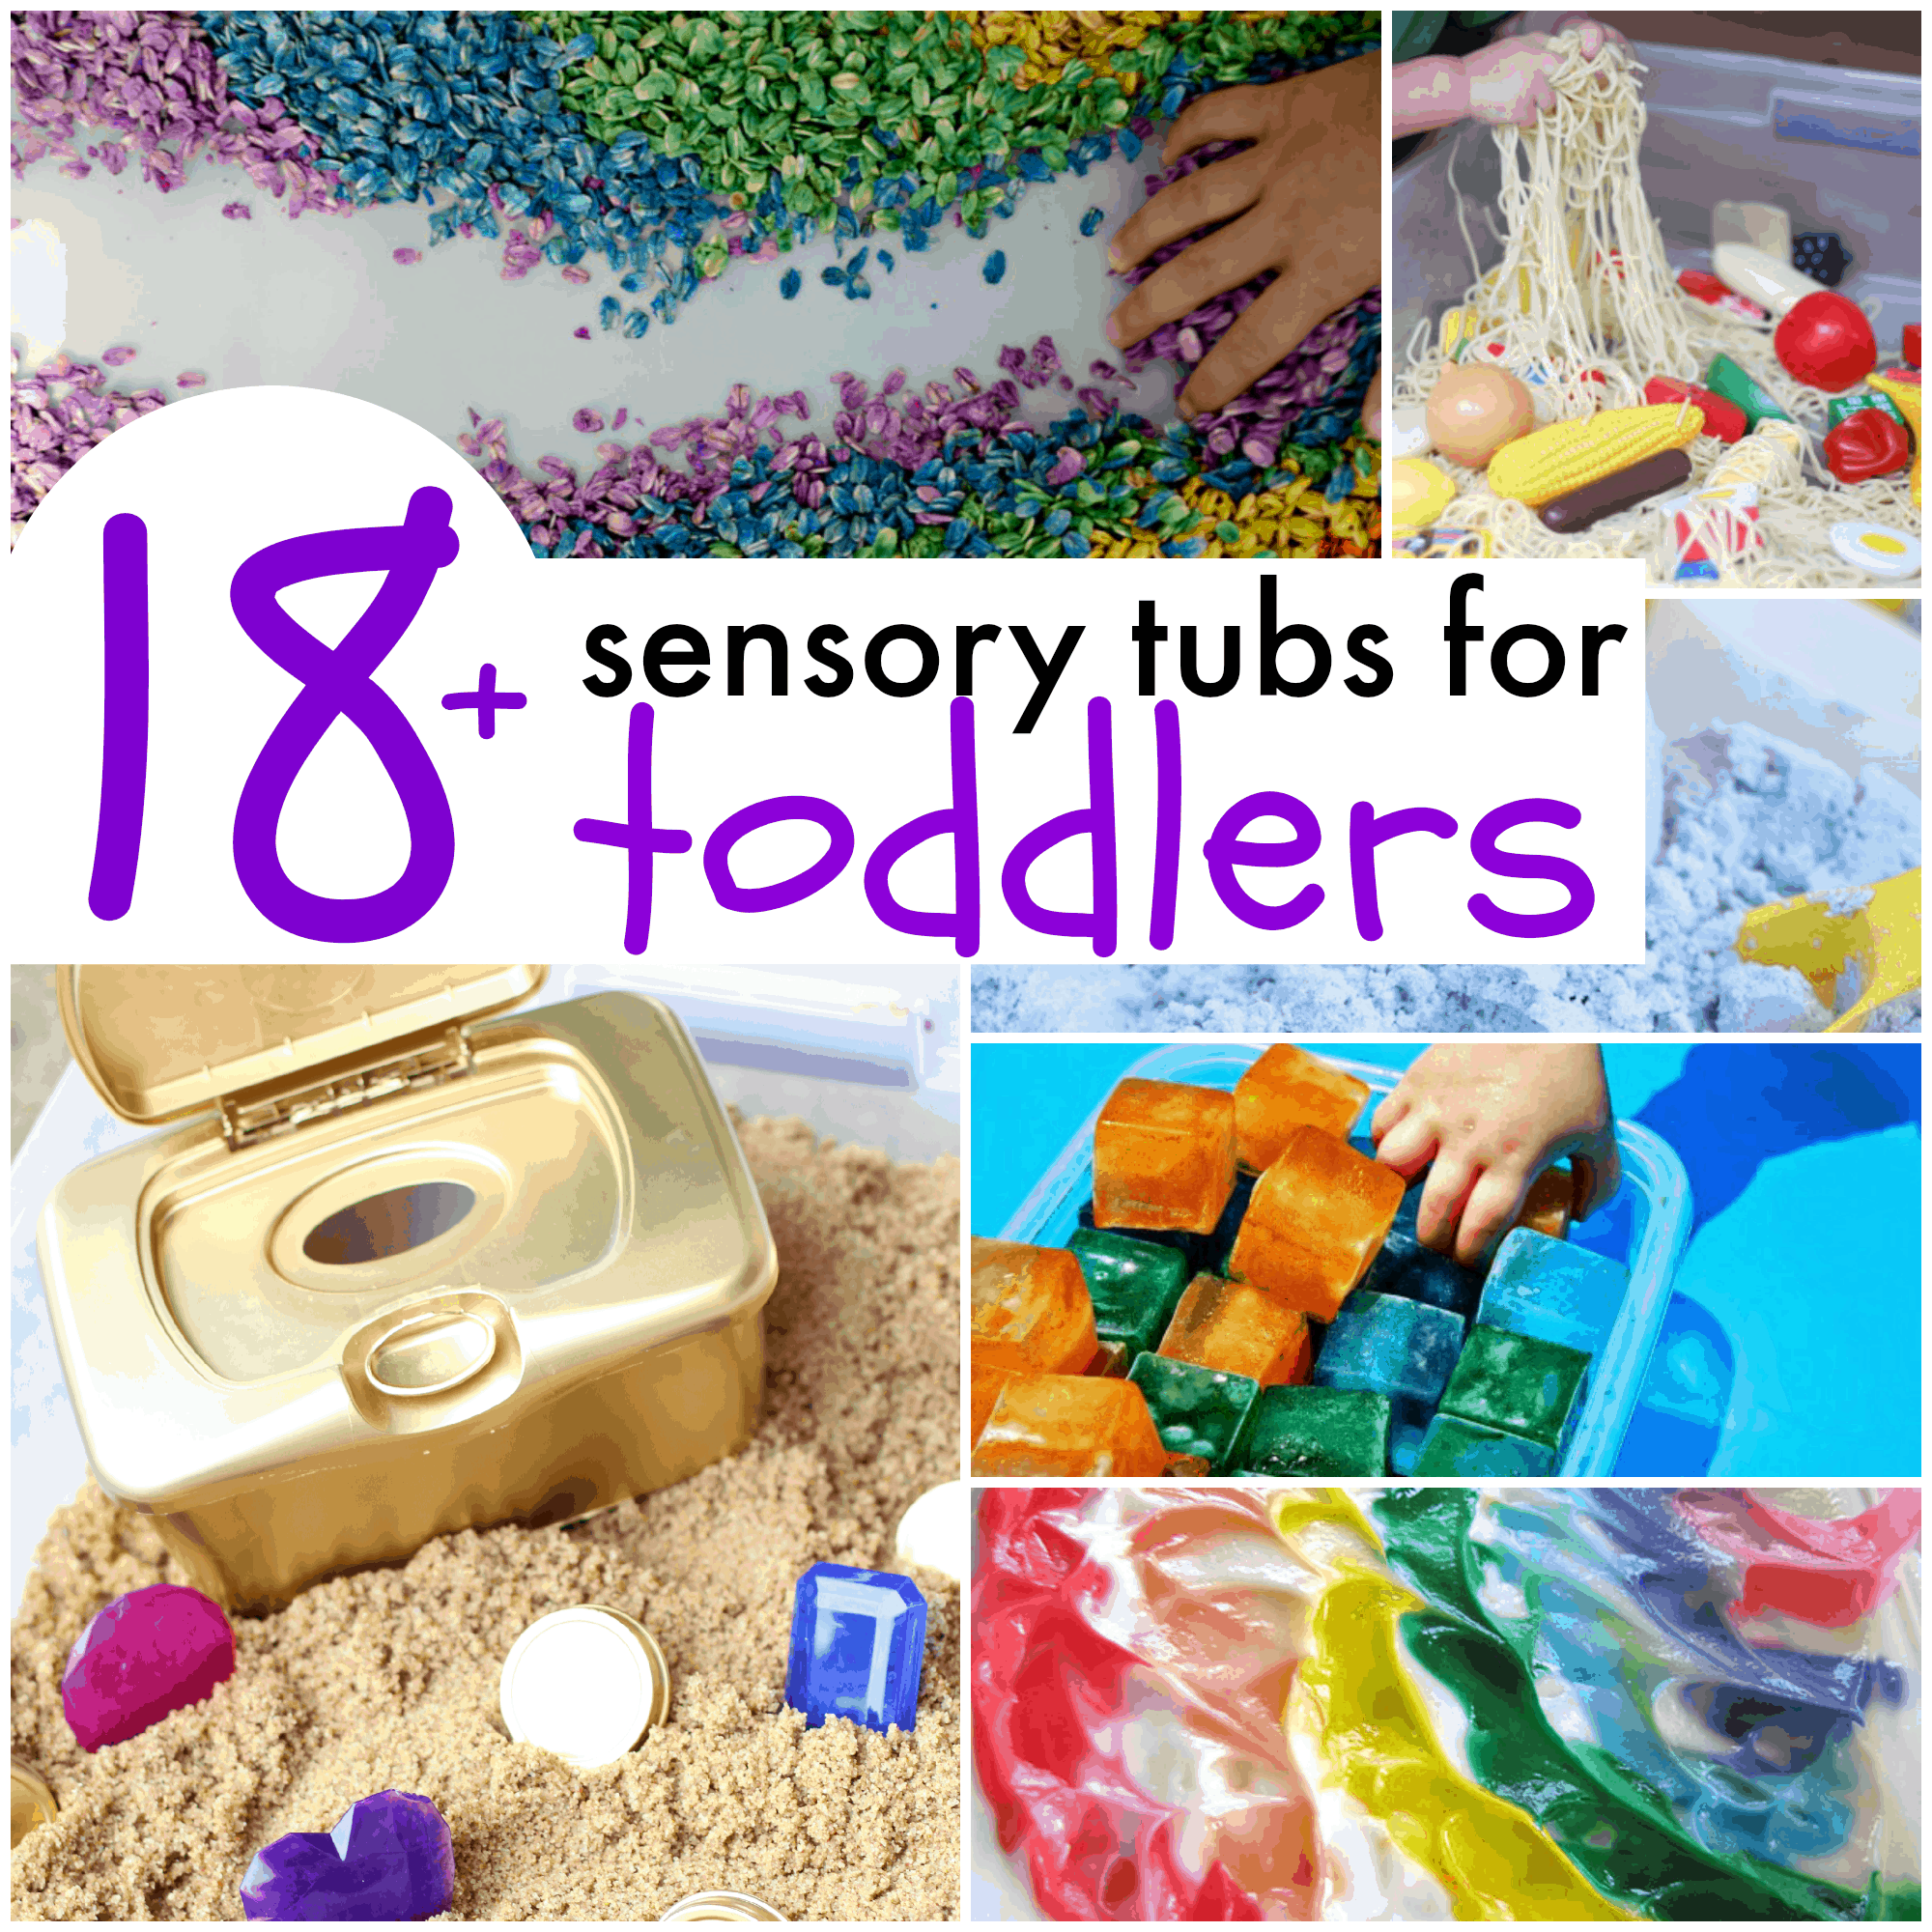 18 Sensory Tubs For Toddlers